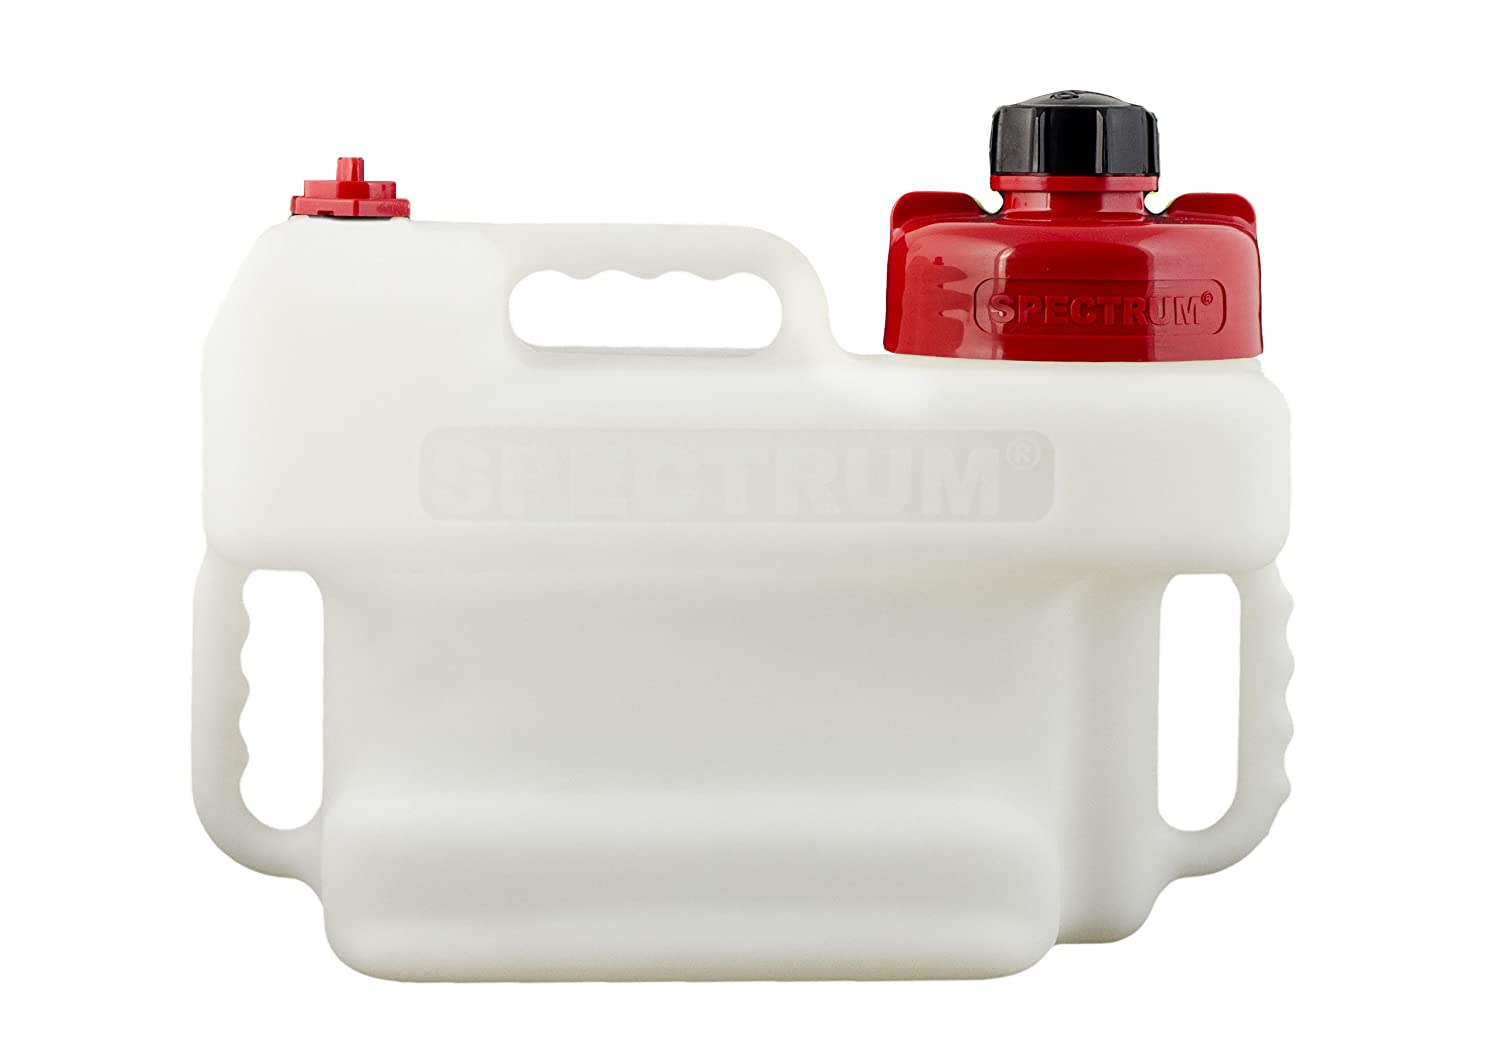 Spectrum 112SPE-KIT Oil Container Kit with Storage Lid, 3-Gallon